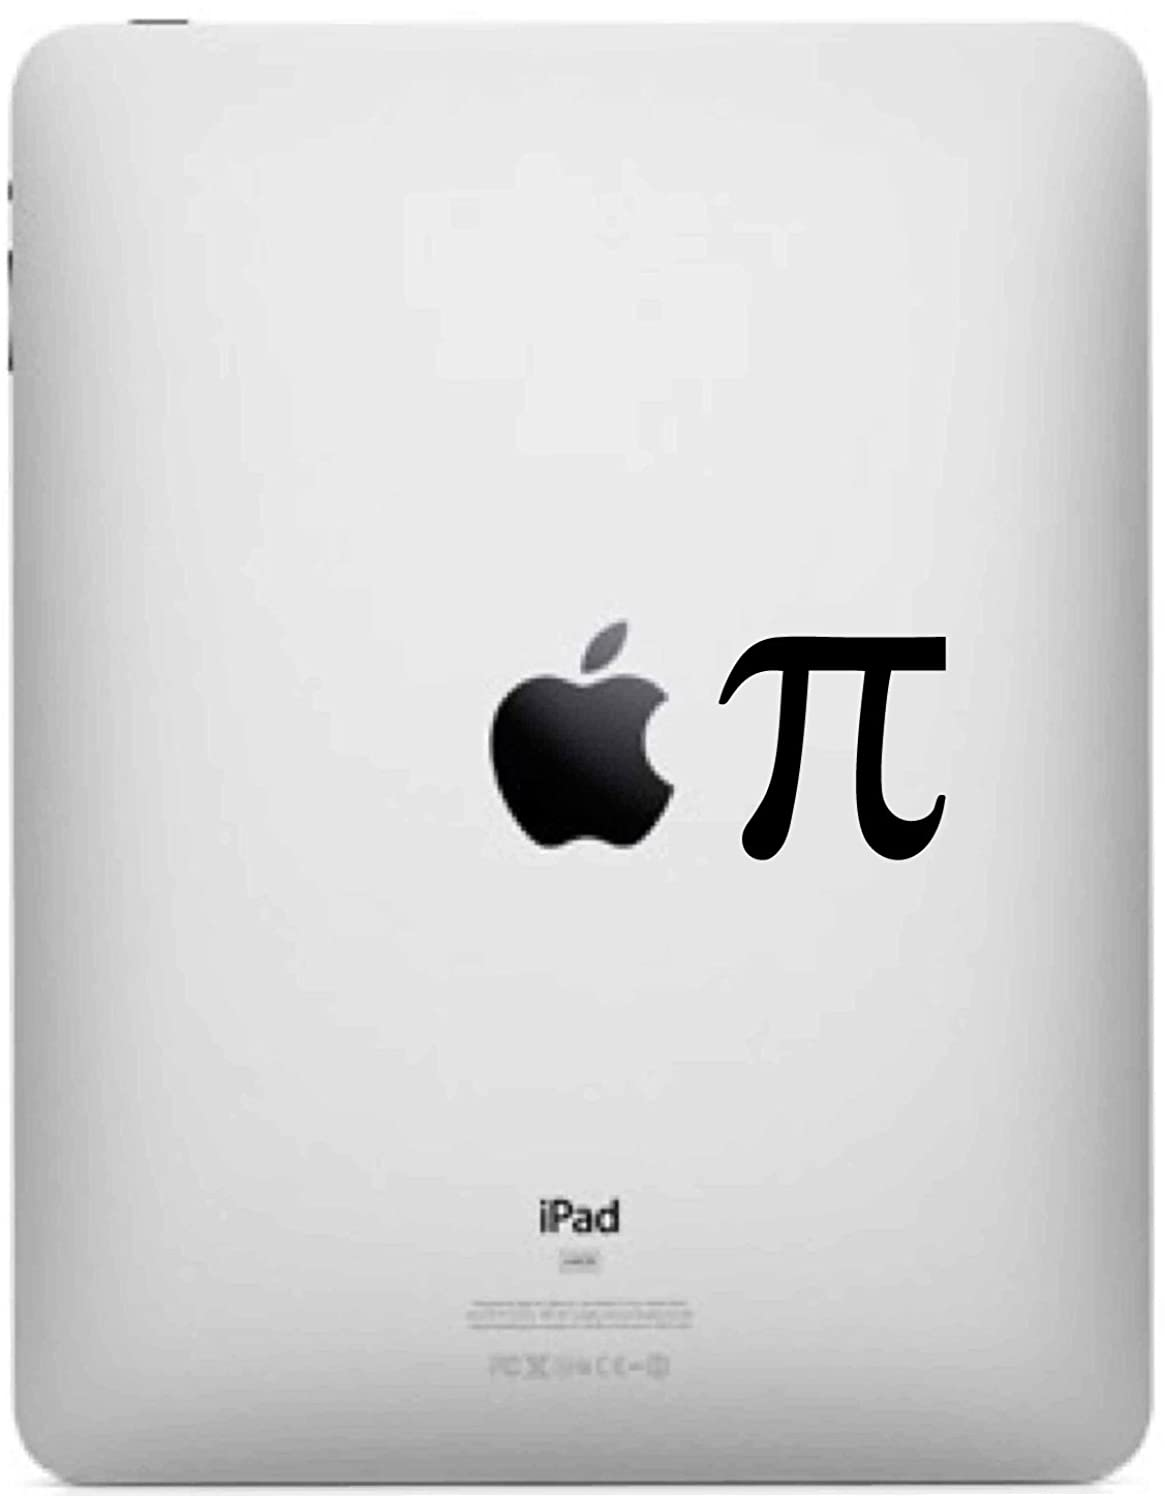 Apple Pi Ipad Decal Ipad Sticker Tablet Decal Apple Skin Ipad Air Decal